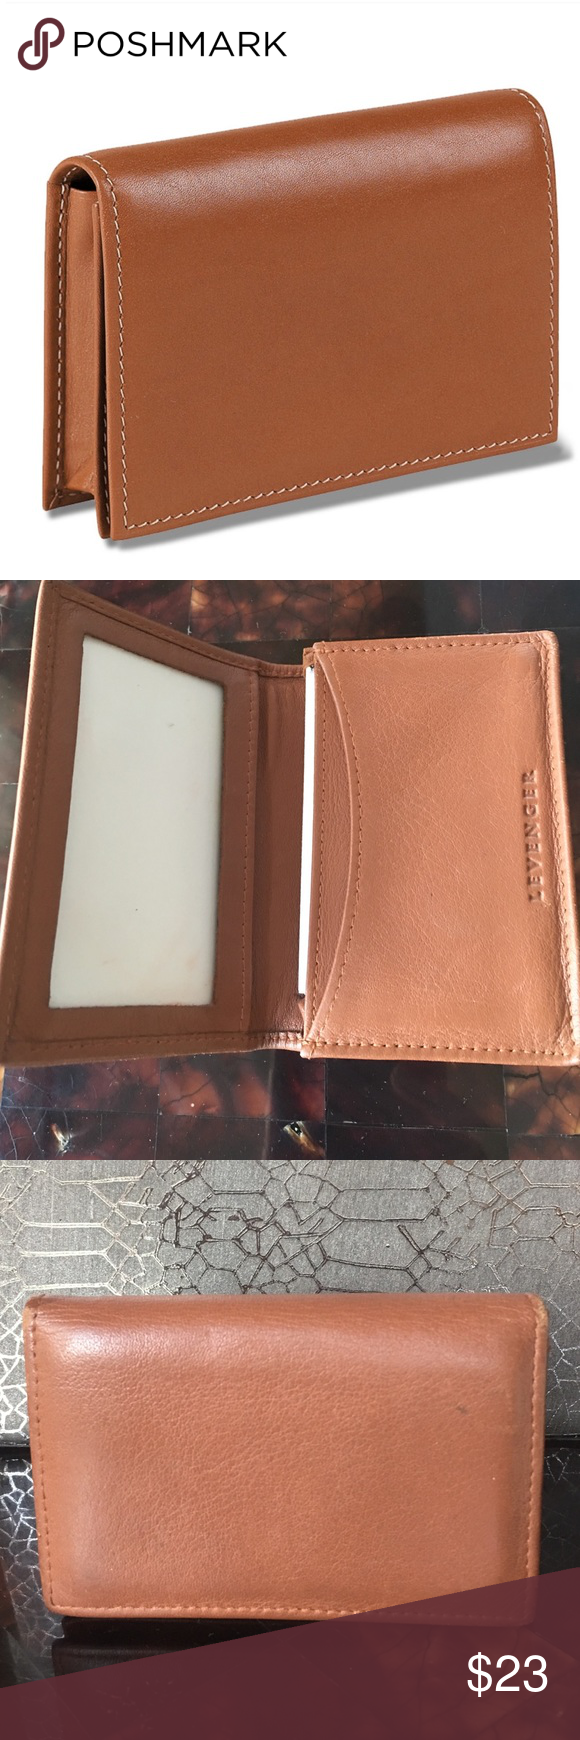 Business credit card holder saddle leather levenger brand business credit card holder saddle leather levenger brand streamlined business card holder colourmoves